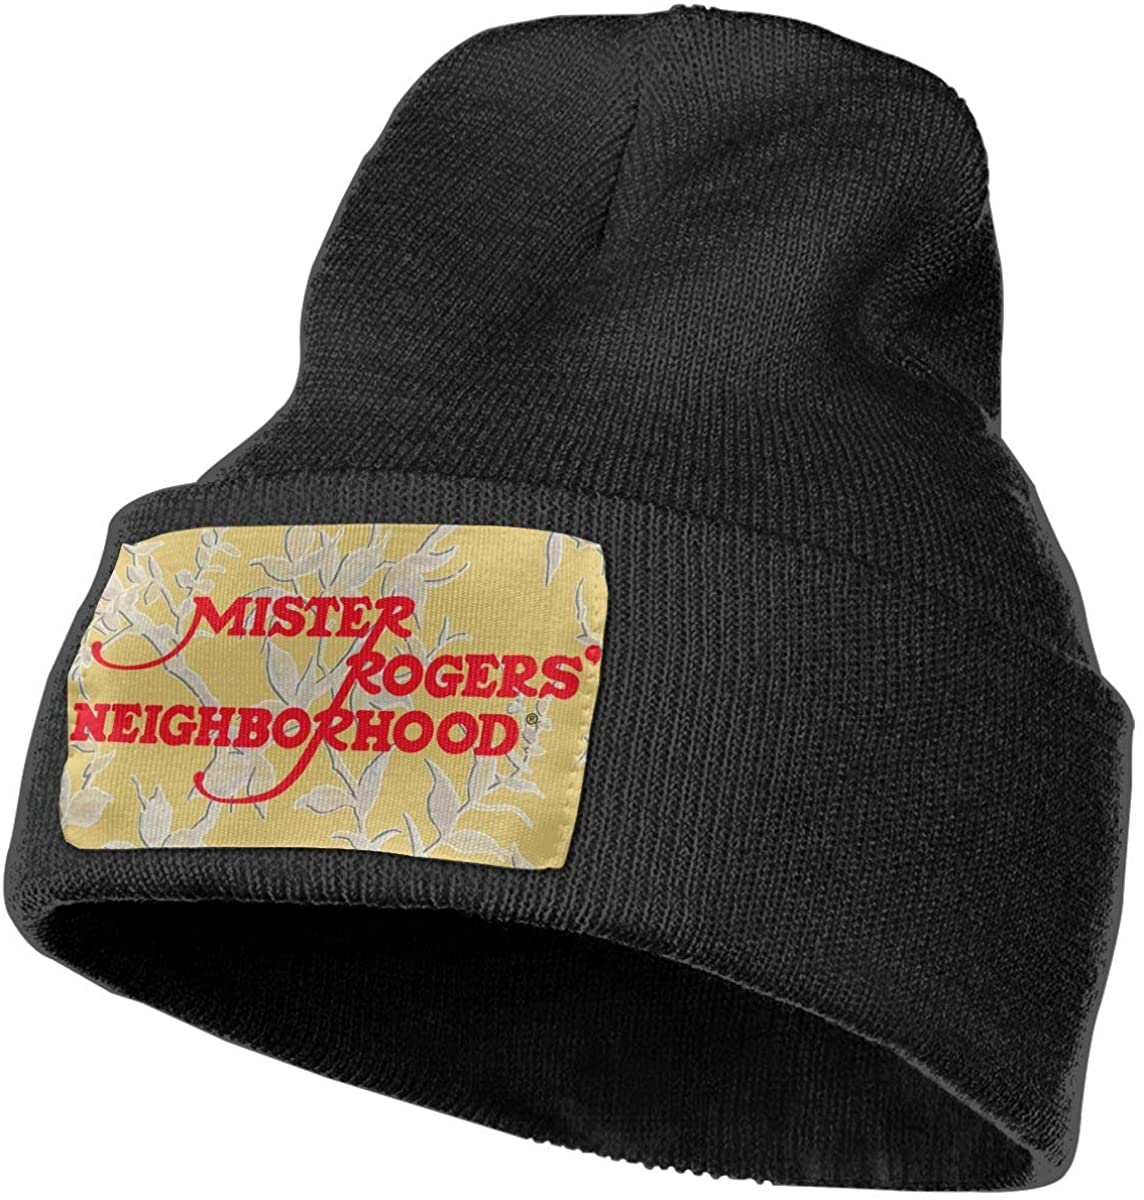 Mister Ro-gers Unisex Fall Winter Warm Knit Cap Beanie Hat Stretchy Ski Cap, 18x30 cm Black